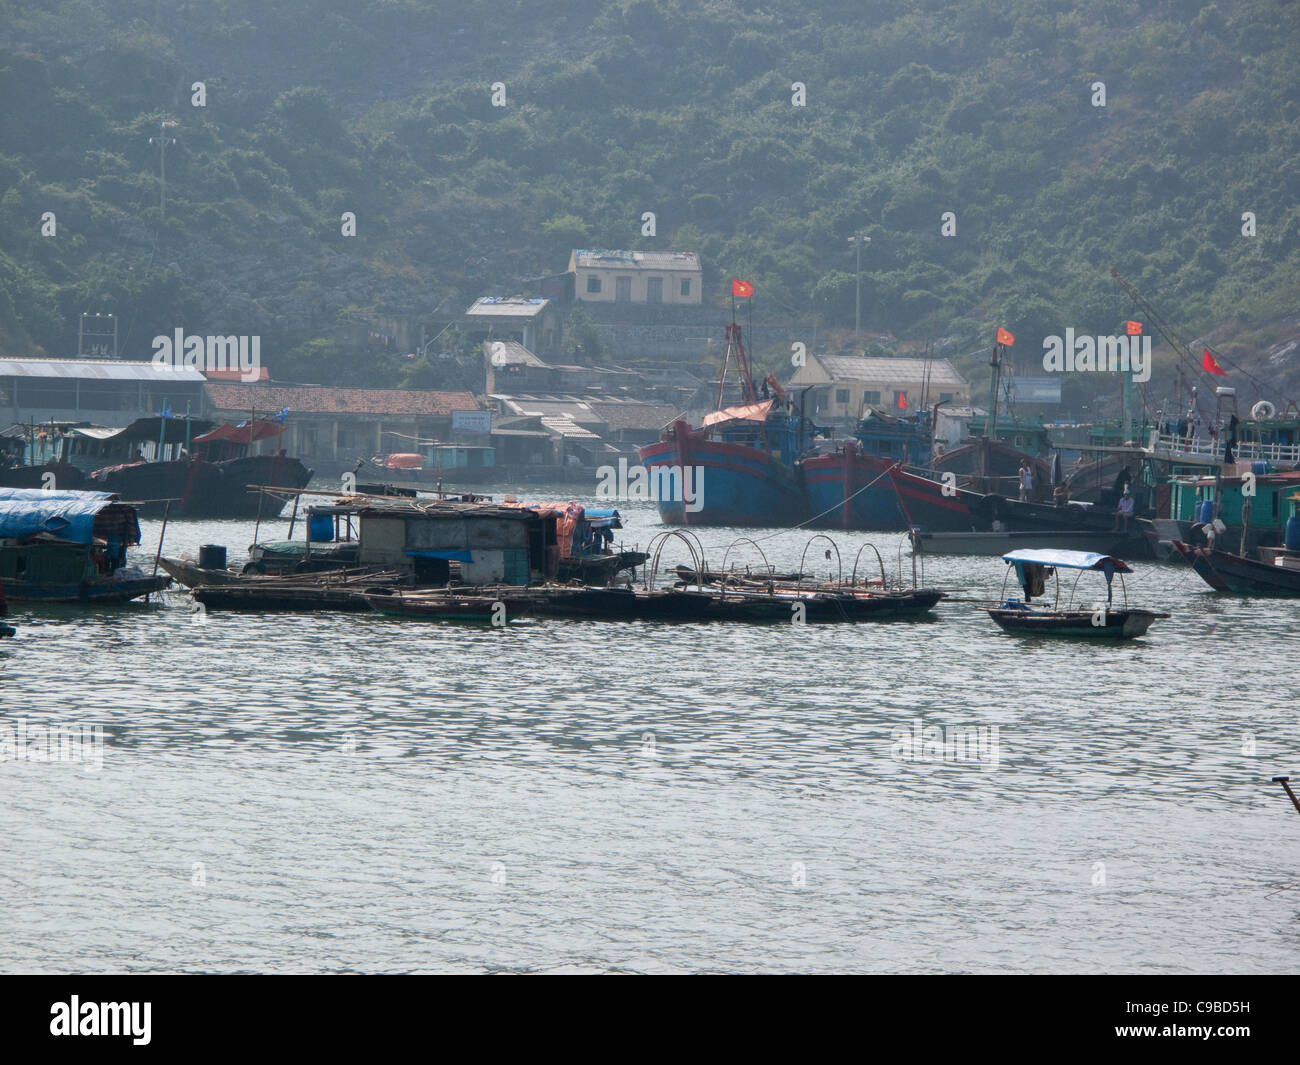 Fishing boats at Halong Bay on the South China Sea, Vietnam - Stock Image